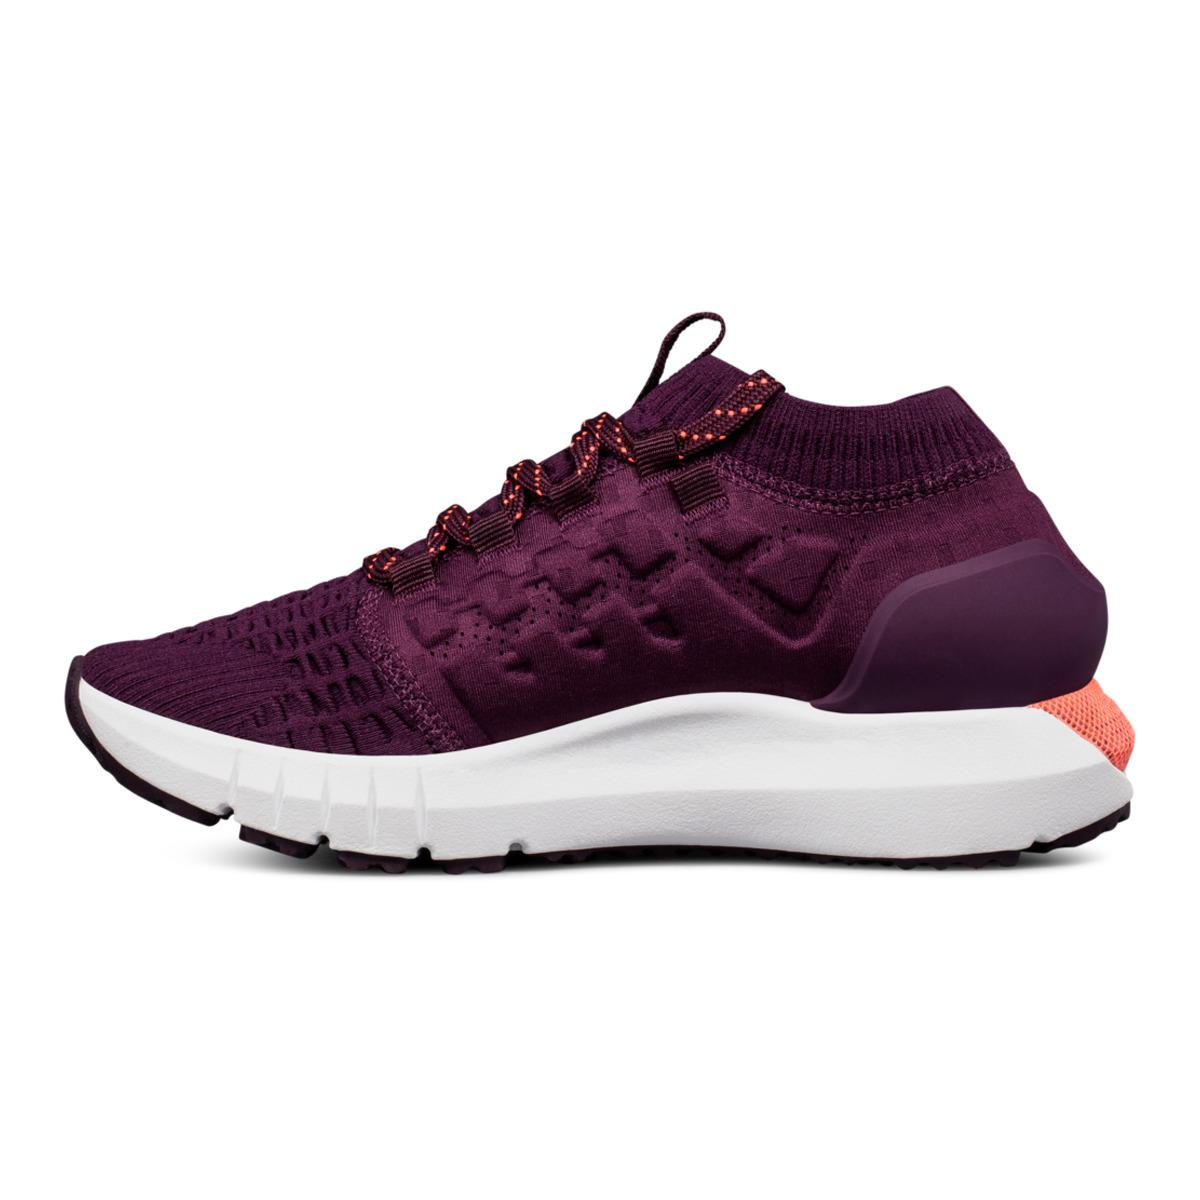 a5fc3a97f0f Under Armour Ua Hovr Phantom Nc Running Shoes in Purple for Men - Lyst